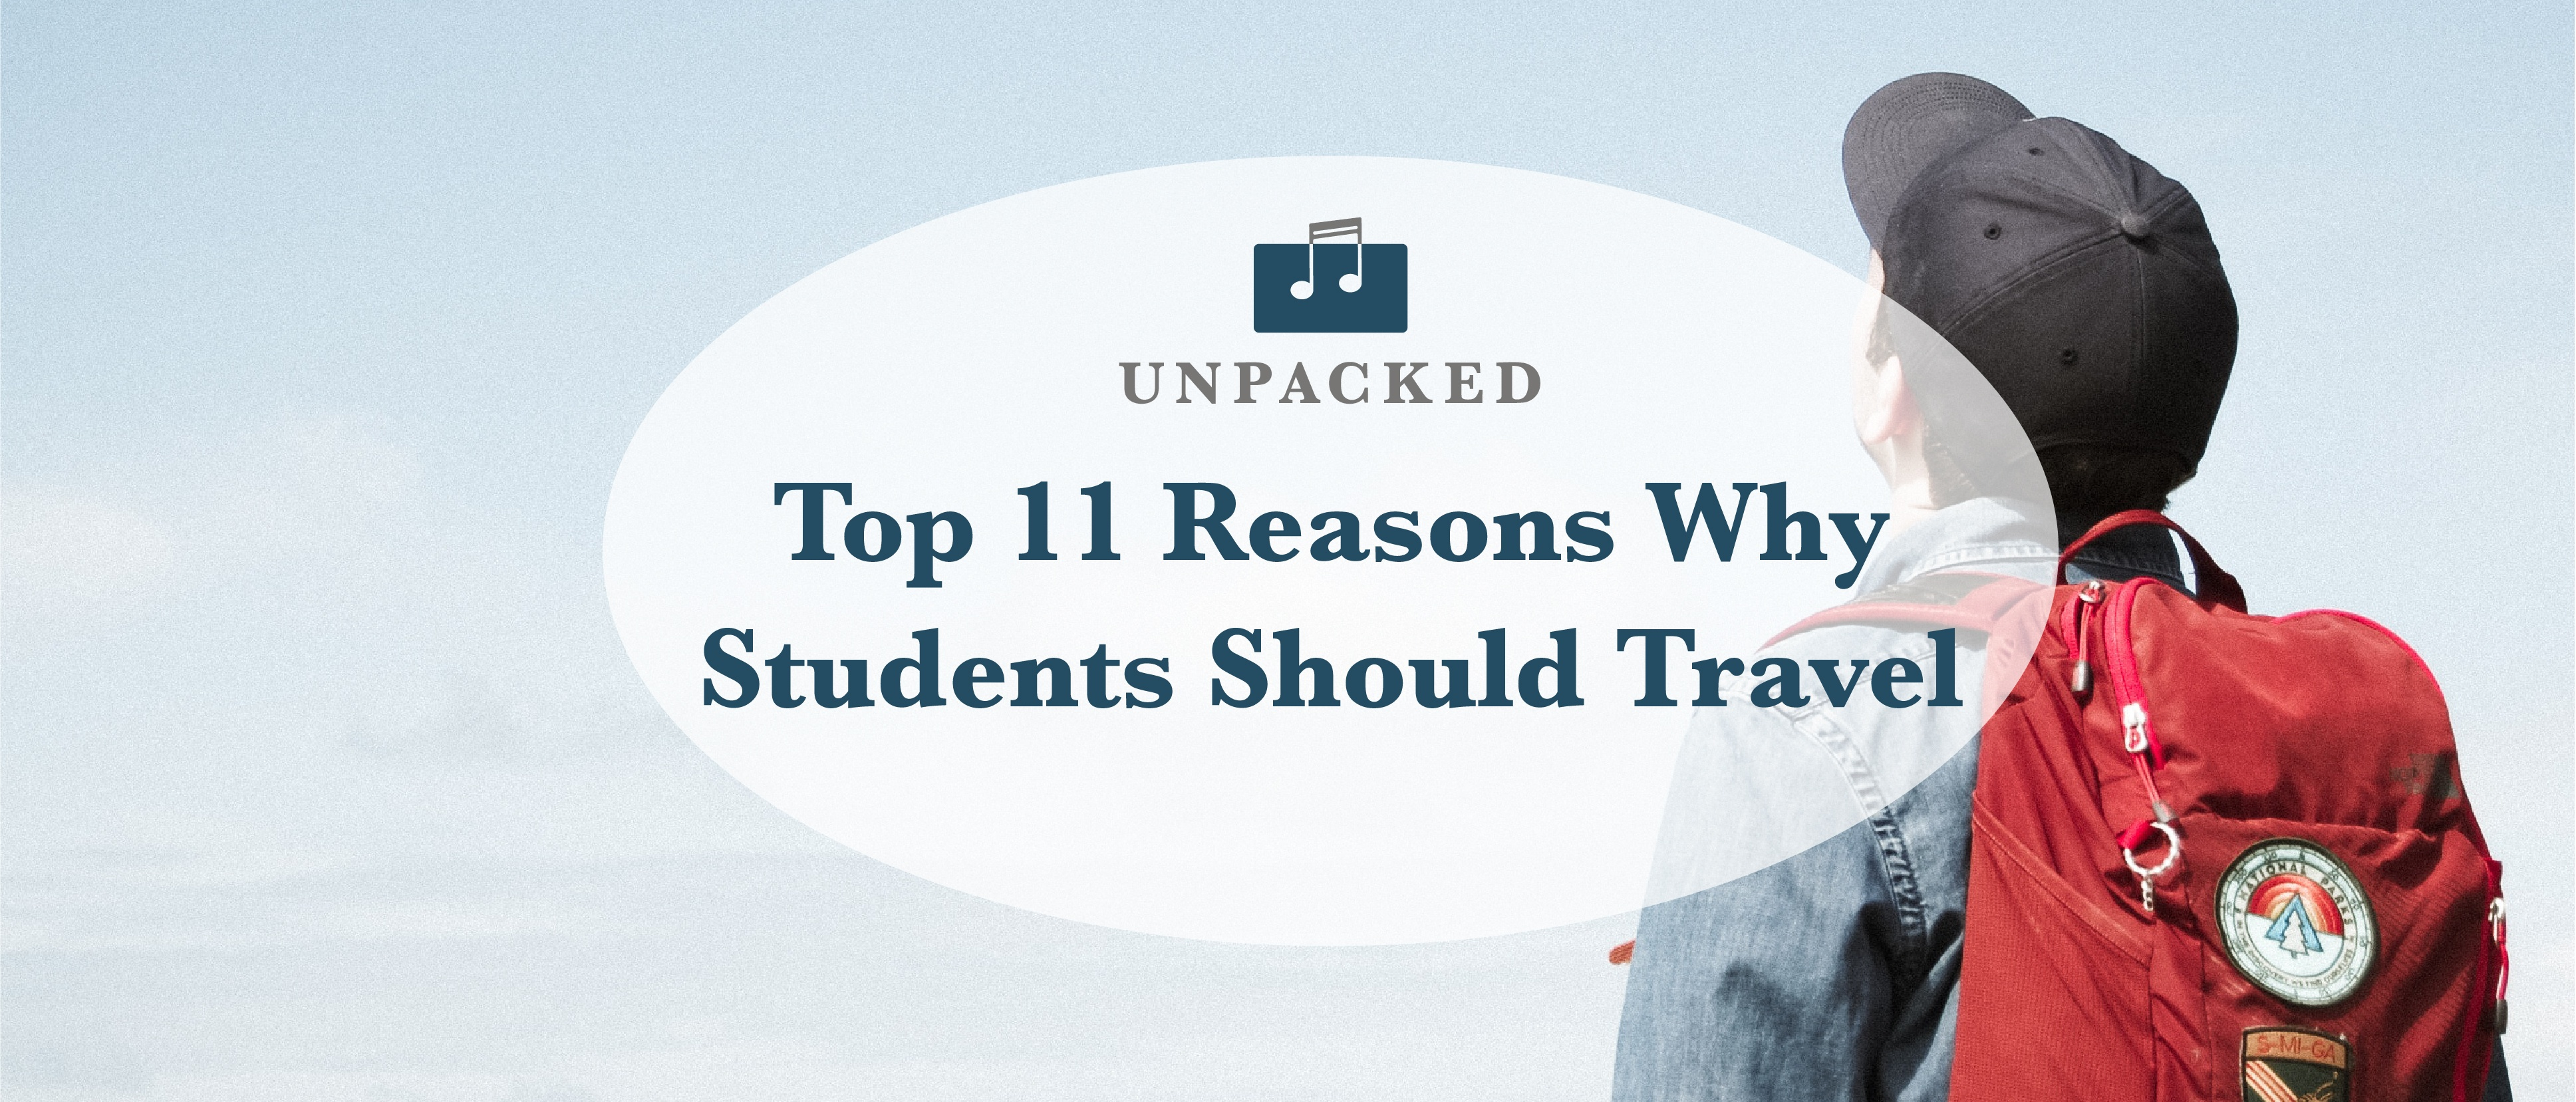 Top 11 Reasons Why Students Should Travel